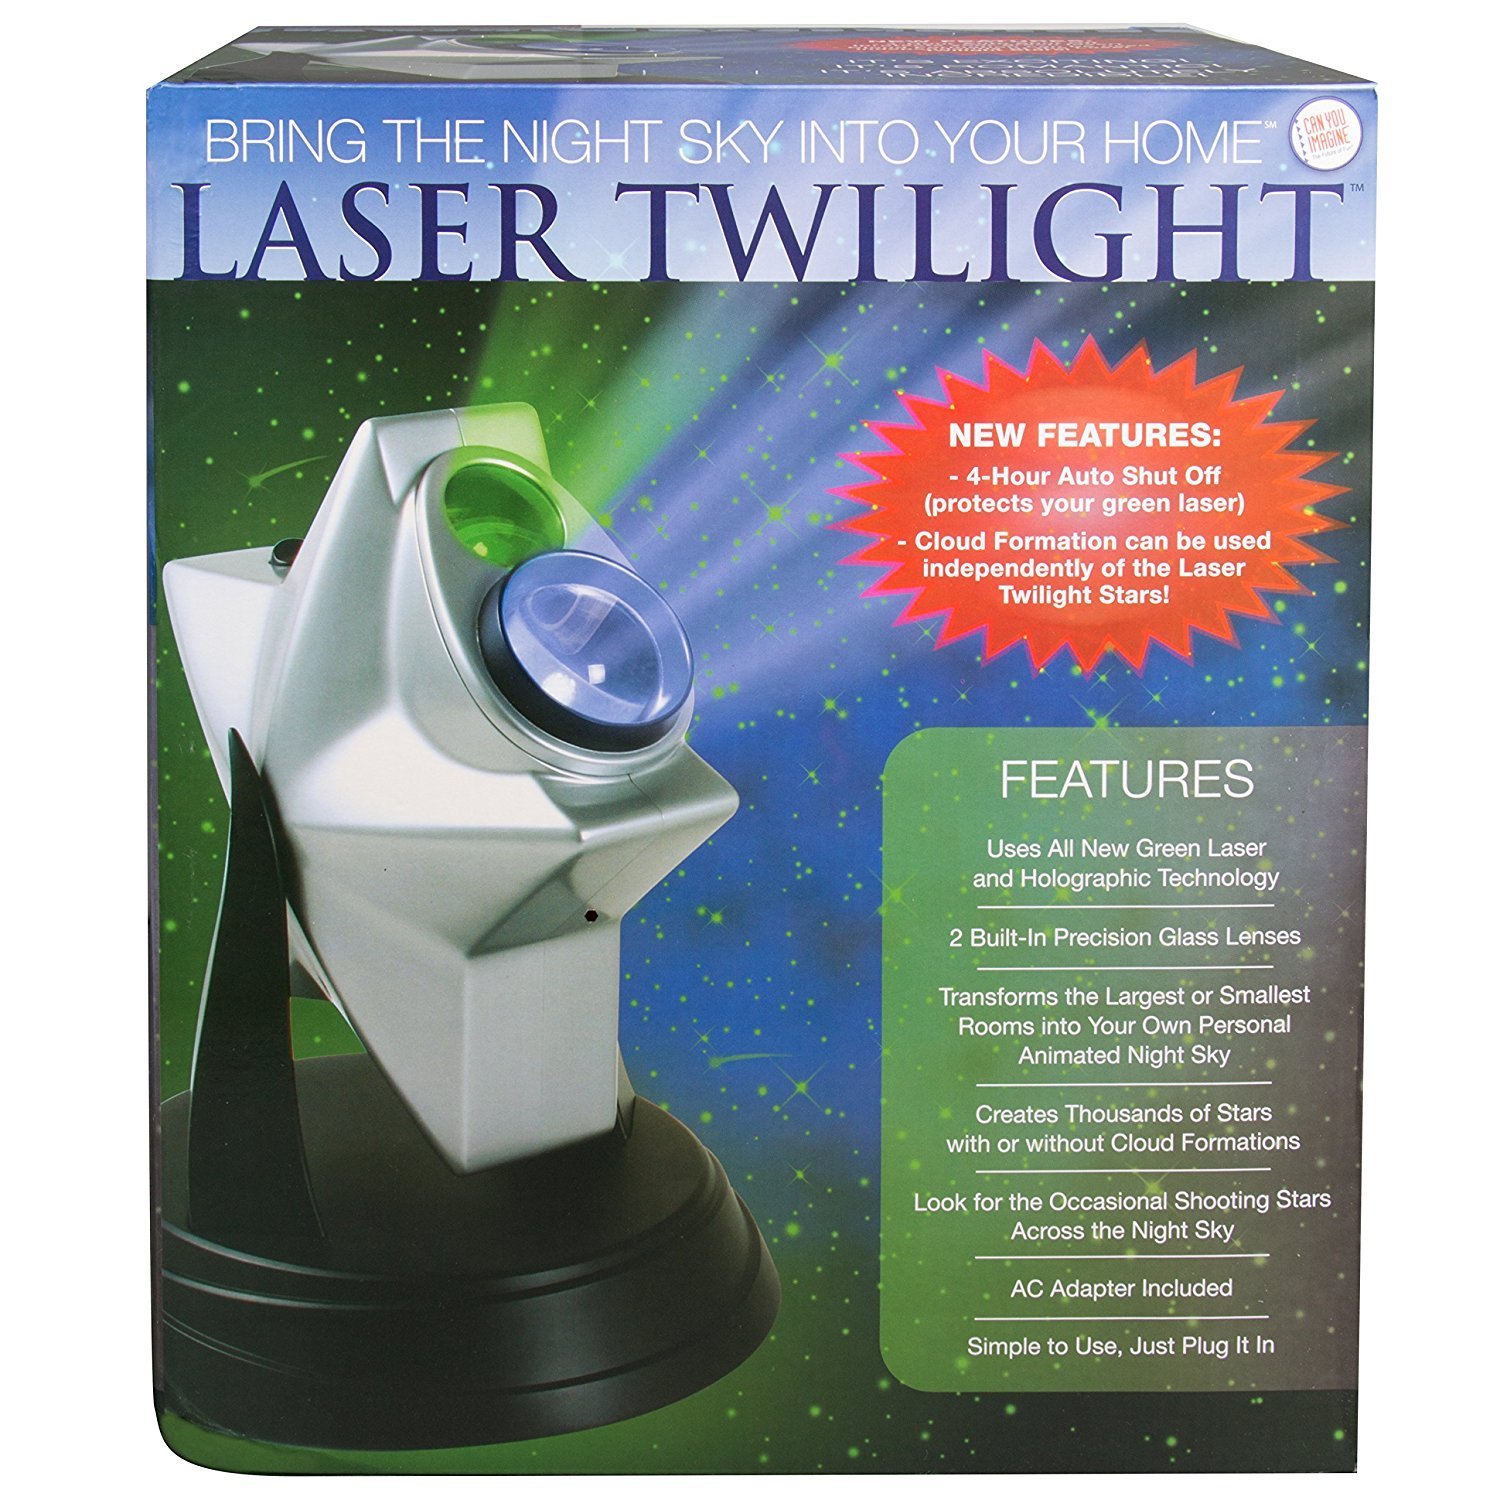 Laser Twilight Indoor Light Show - Bring the Night Sky into Your Home